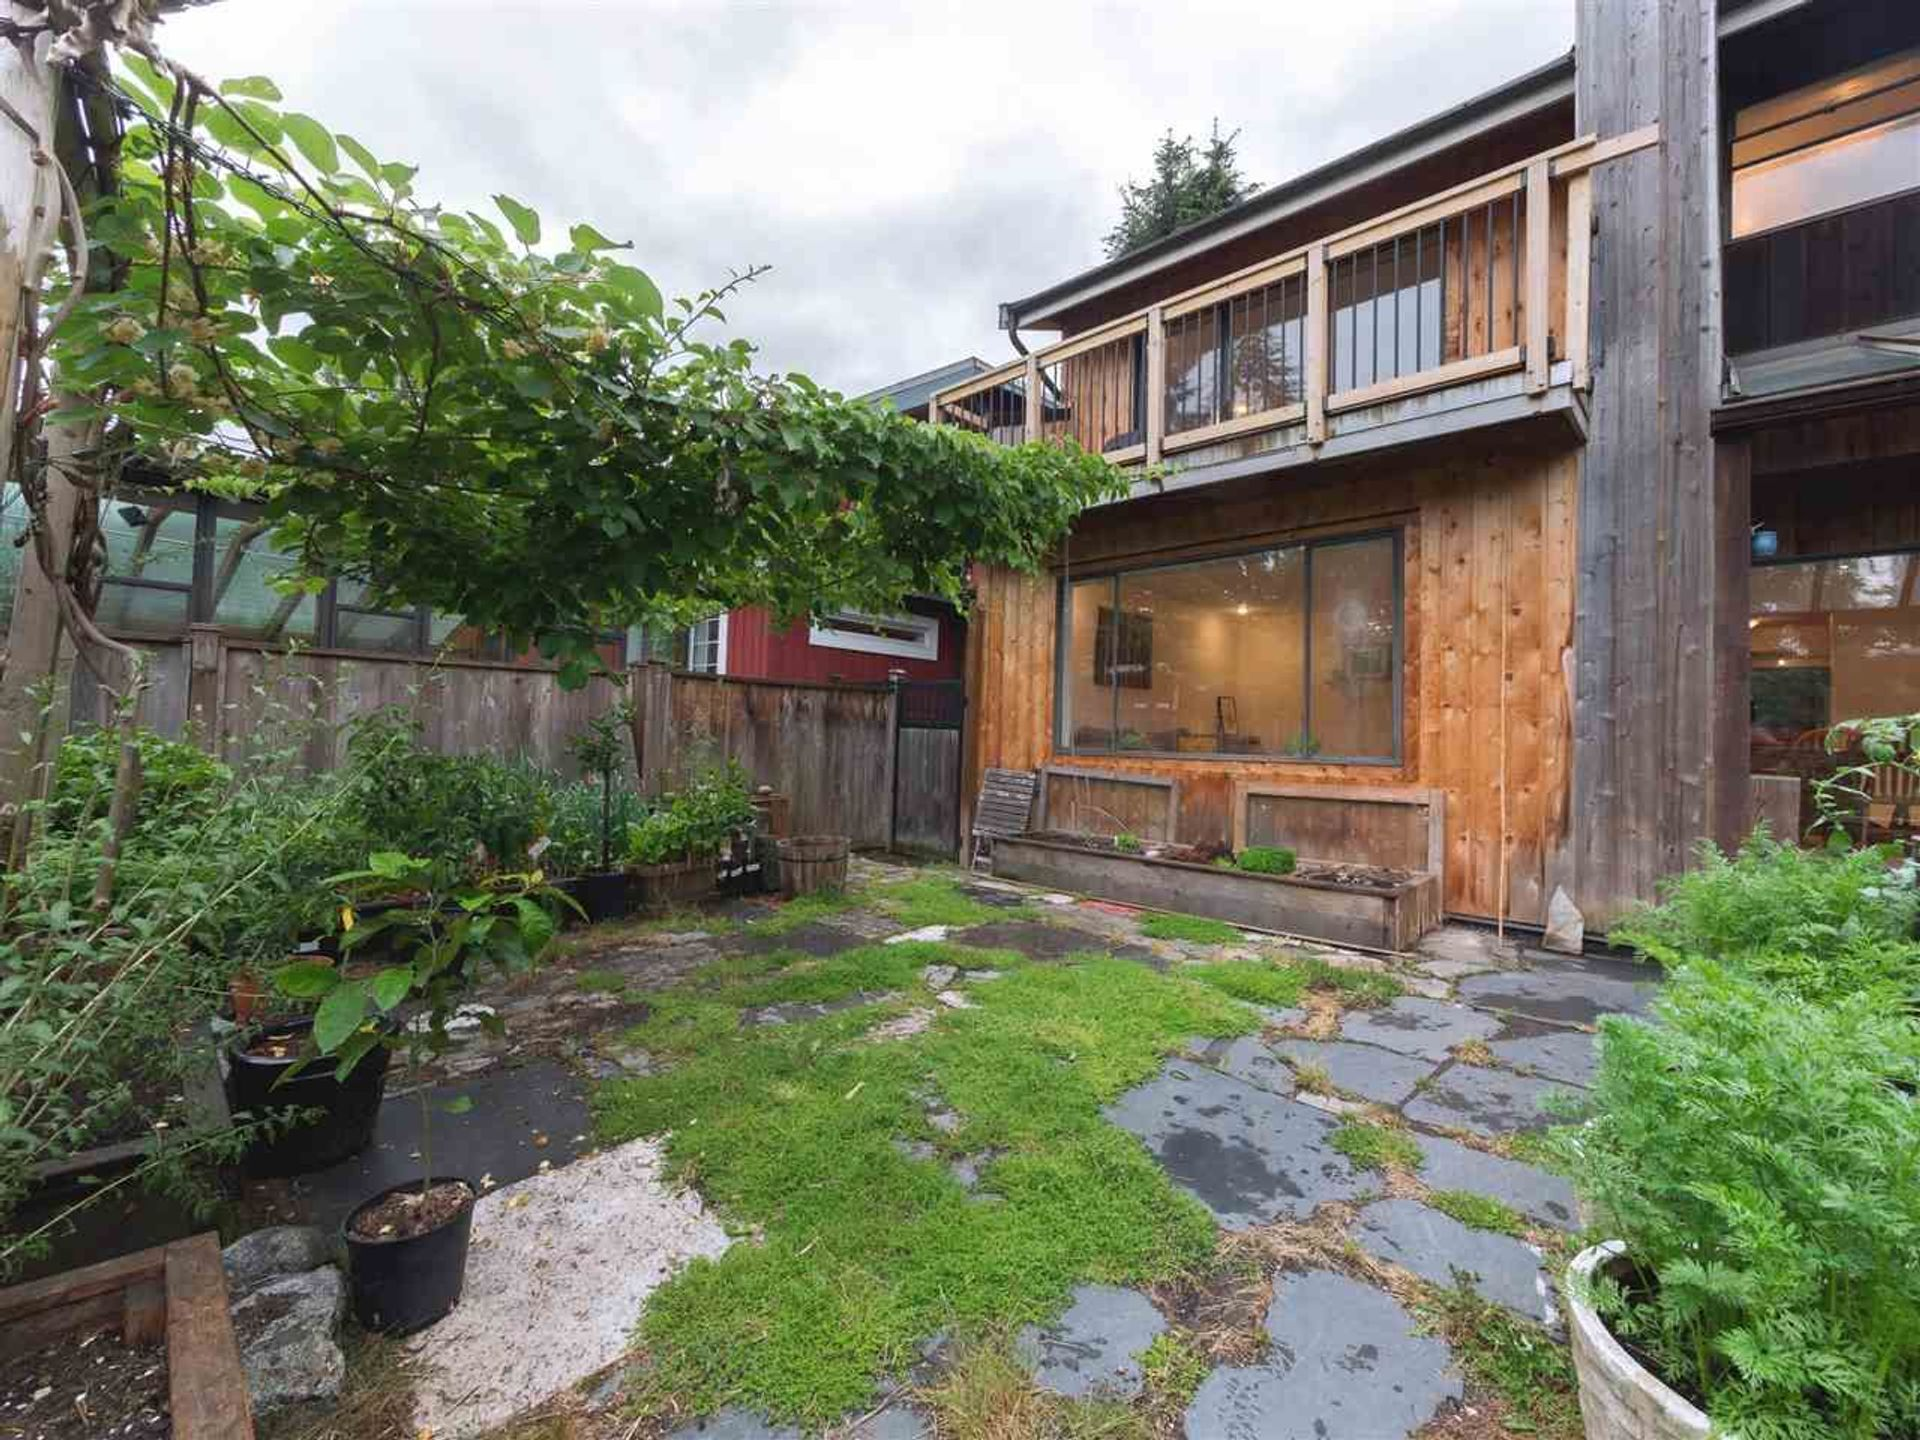 1335-e-8th-street-lynnmour-north-vancouver-01 at 1335 E 8th Street, Lynnmour, North Vancouver